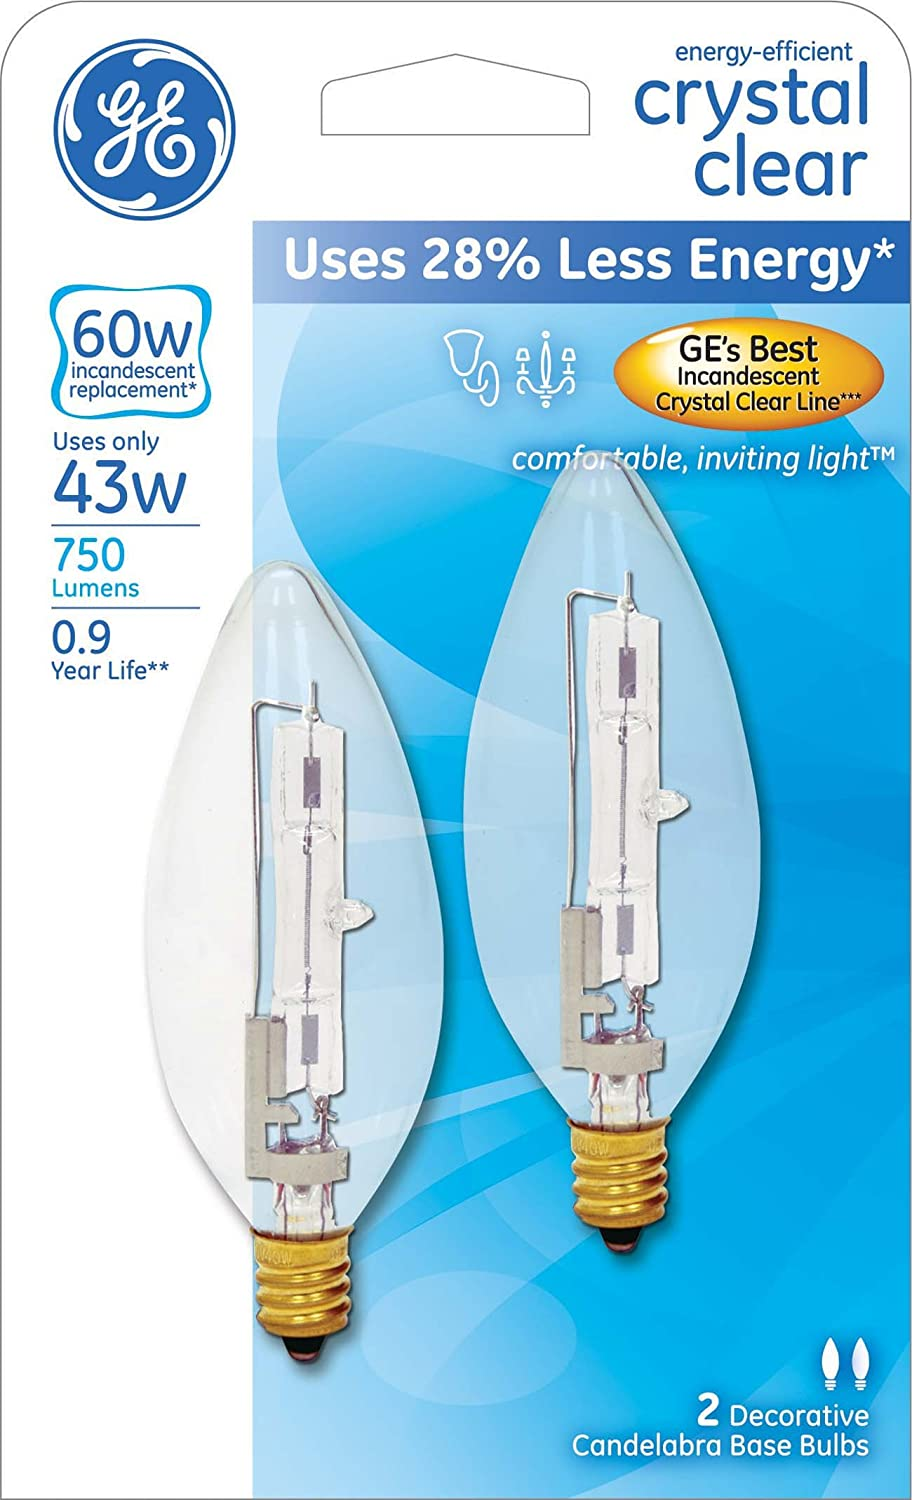 Ge lighting 60280 energy efficient crystal clear 60 watt 750 lumen ge lighting 60280 energy efficient crystal clear 60 watt 750 lumen blunt tip light bulb with candelabra base 2 pack amazon arubaitofo Gallery